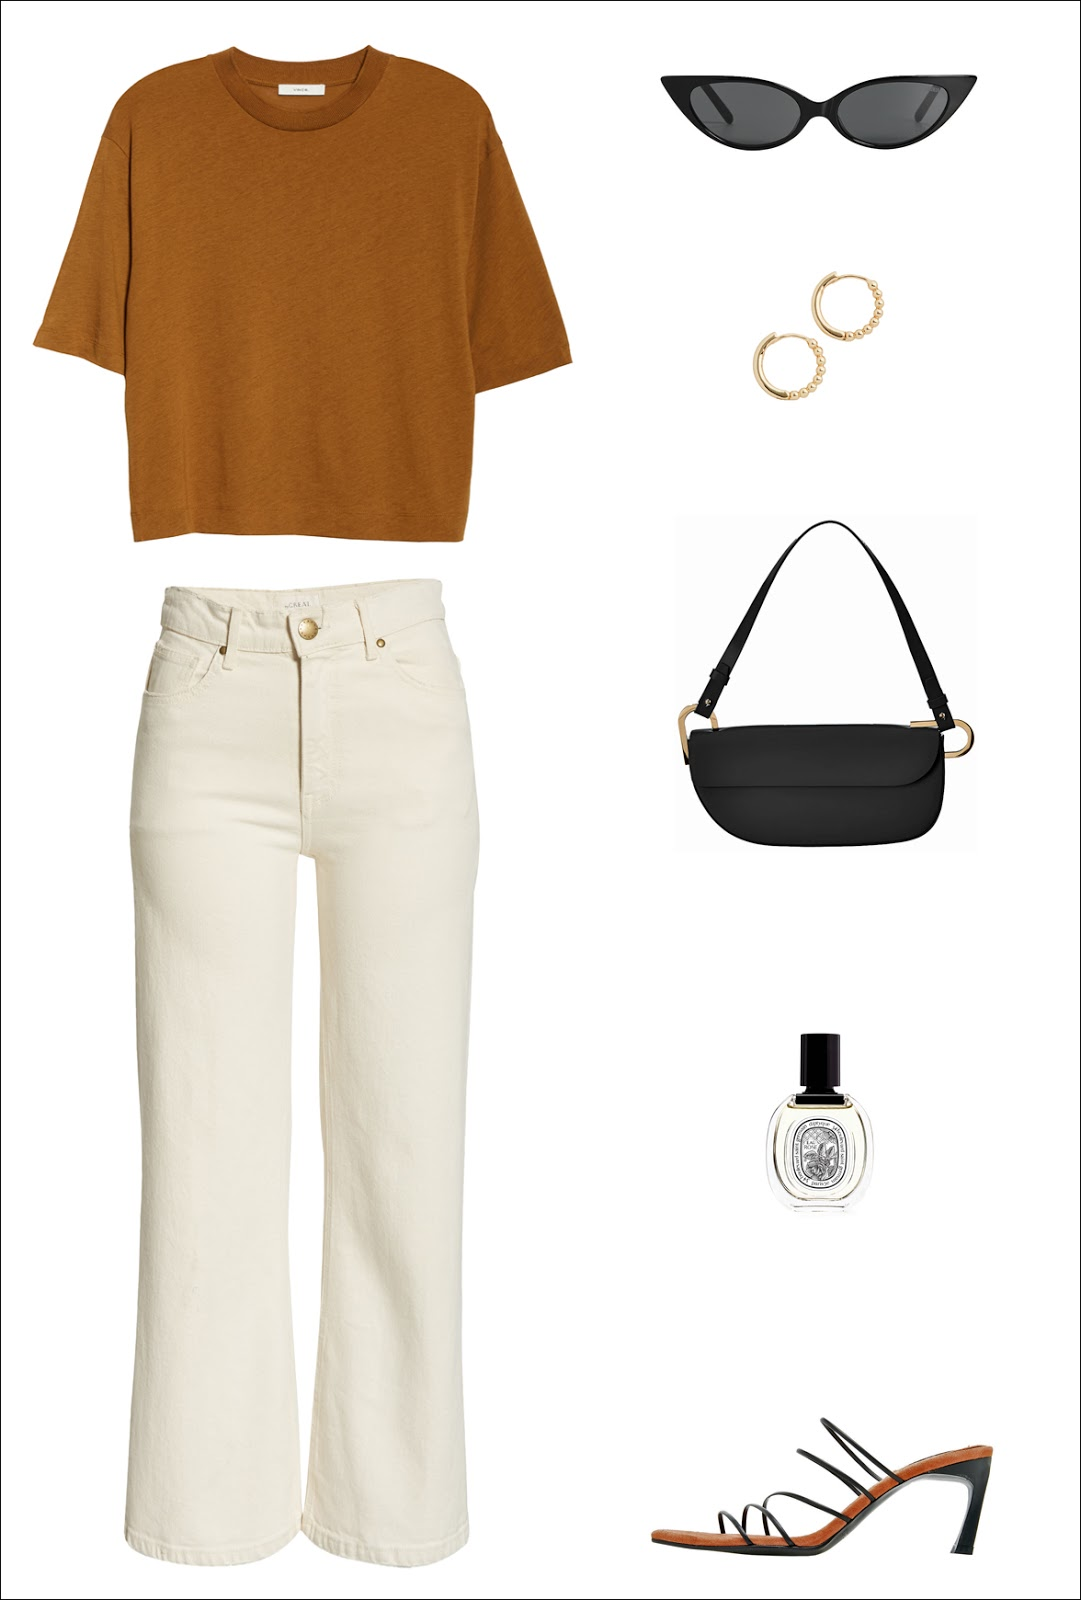 Everyday Spring Outfit Idea: Camel Tee, Black Cat-Eye Sunglasses, Ball-Studded Hoop Earrings, '90s-Inspired Black Shoulder Bag, Off-White Jeans, Diptyque Rose Spray, Reike Nen Strappy Sandals